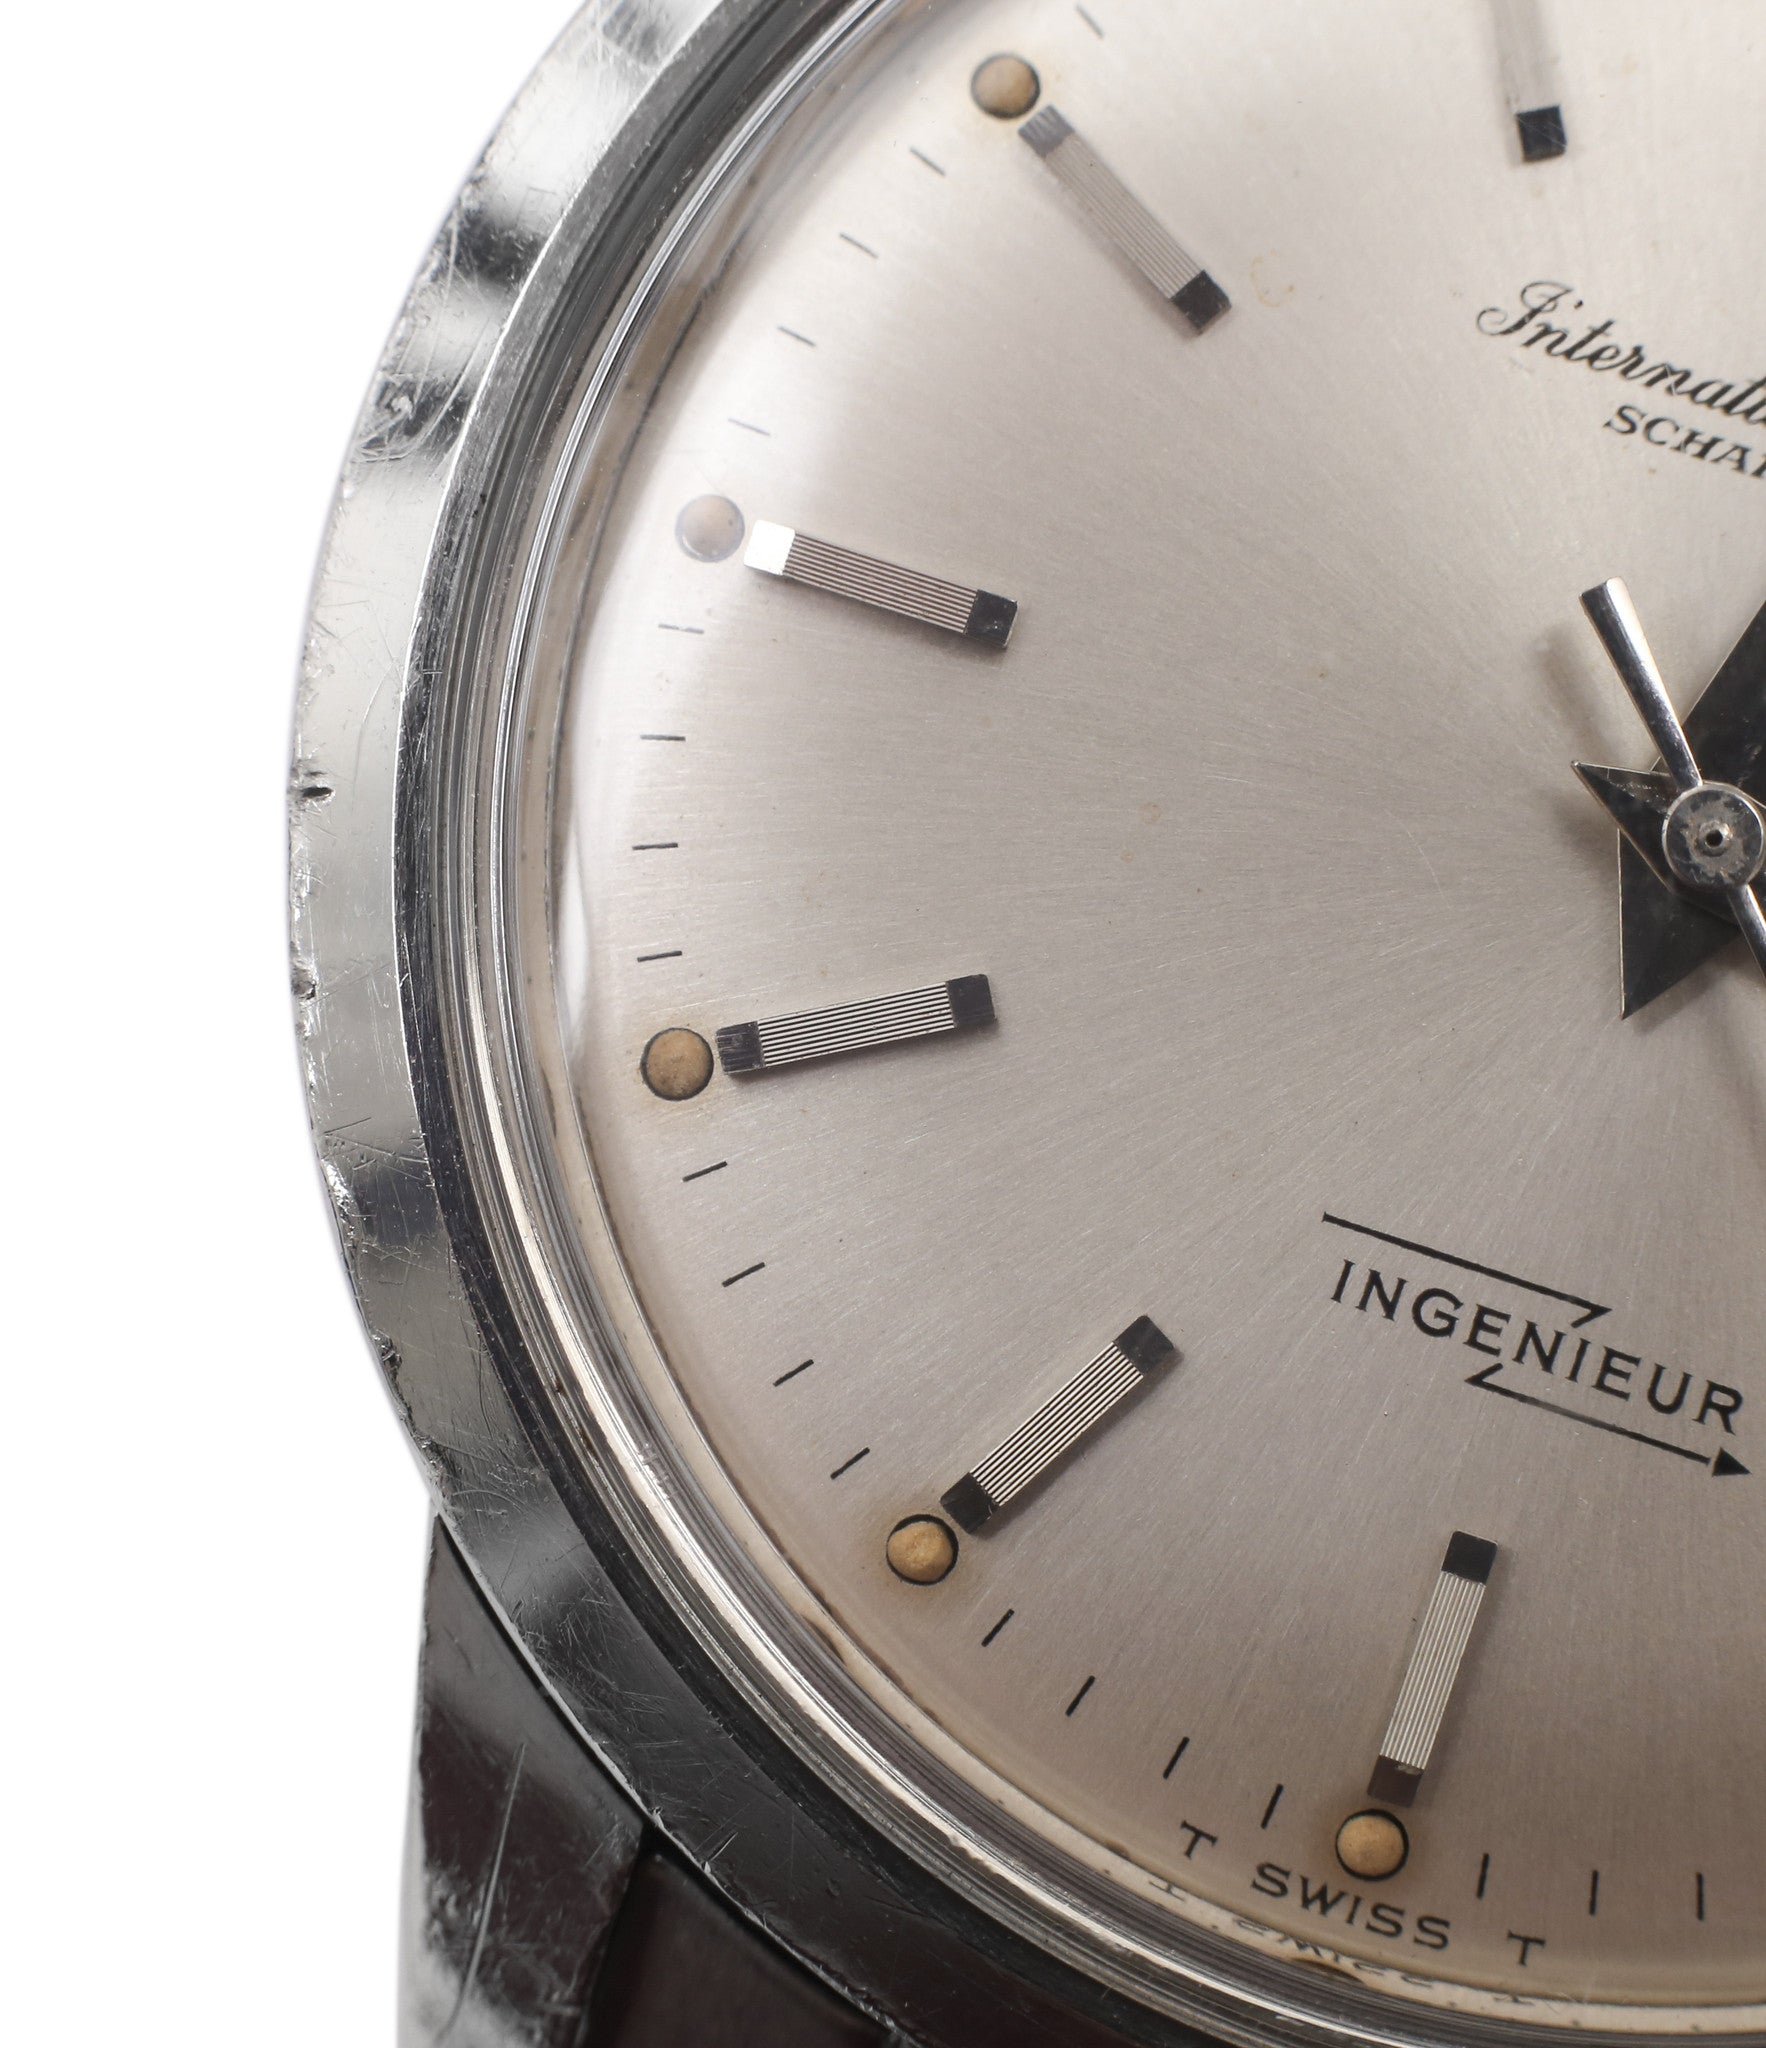 lumes vintage IWC Ingenieur 666AD steel watch unrestored dial for sale at A Collected Man